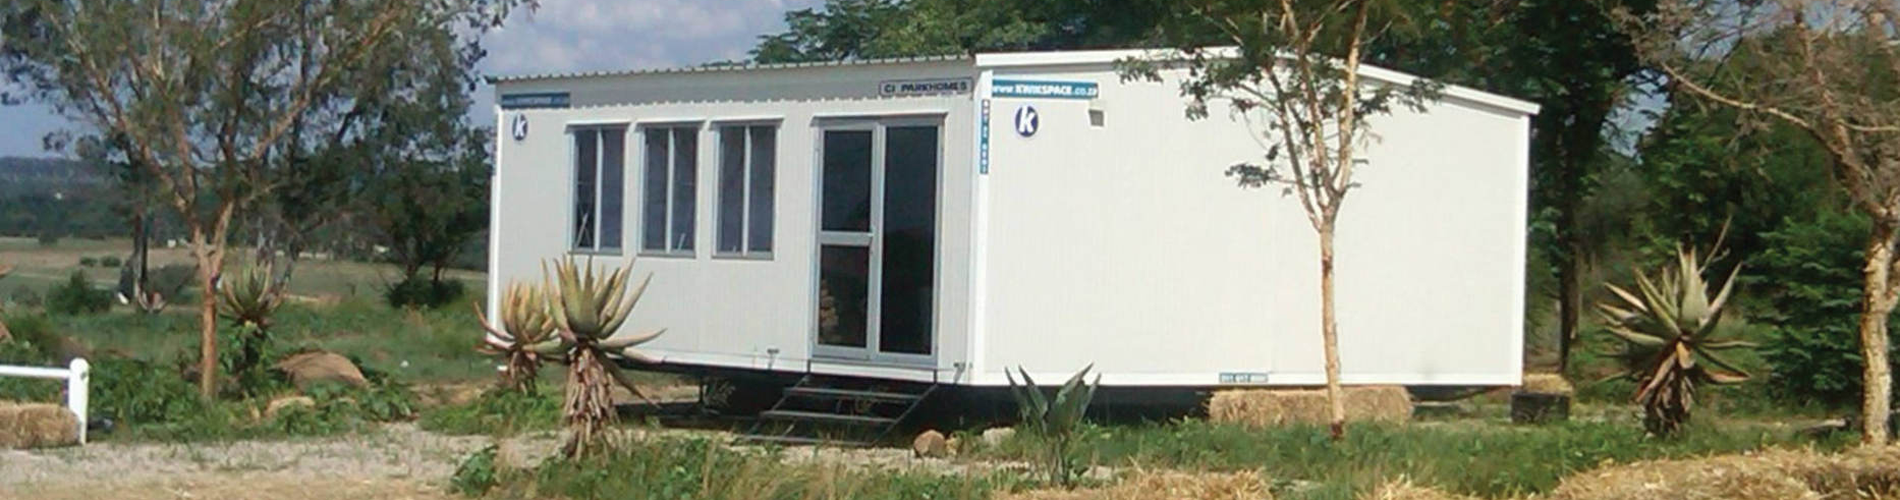 Mobile office solutions are small portable offices for sale or rent. Kwikspace has portable office trailers for sale and prefab office buildings for sale.